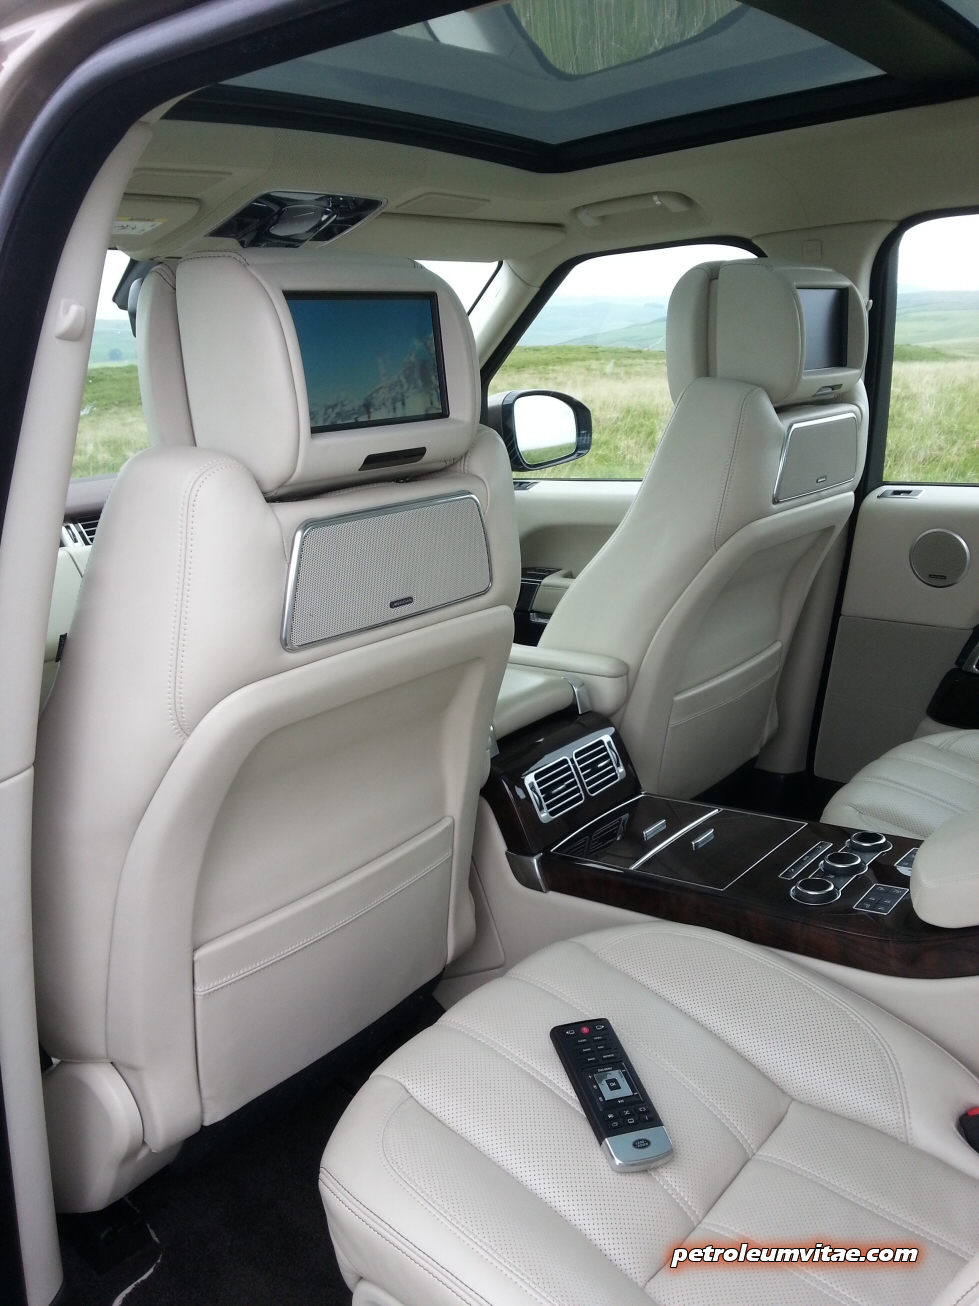 East Coast Diesel >> One day. Six hundred and fifty miles. A Range Rover SDV8 ...